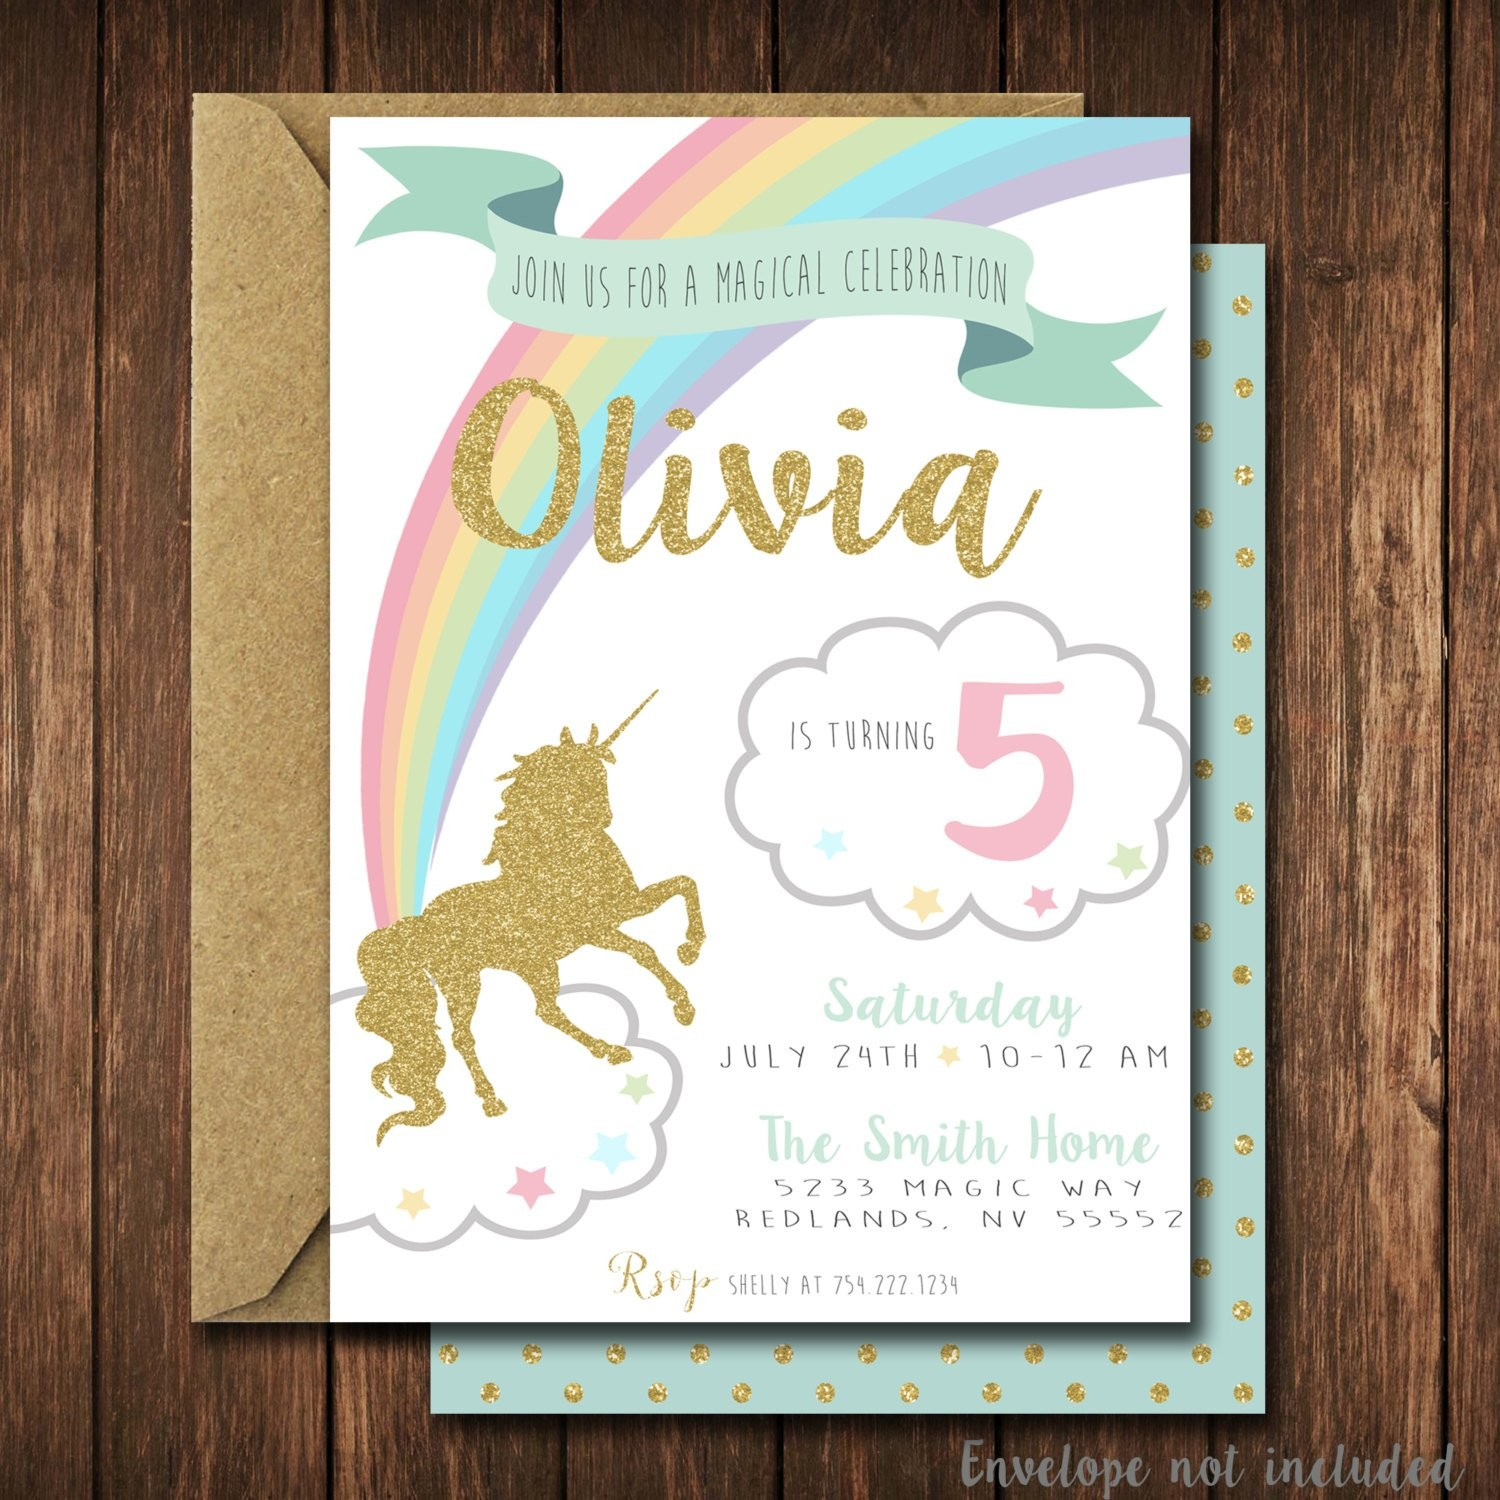 Unicorn March Calendar Mejores Y Más Novedosos Modern Unicorn Birthday Invitation Unicorn Invitation Of Unicorn March Calendar Mejores Y Más Novedosos Unicorn Pwr Diary Purple